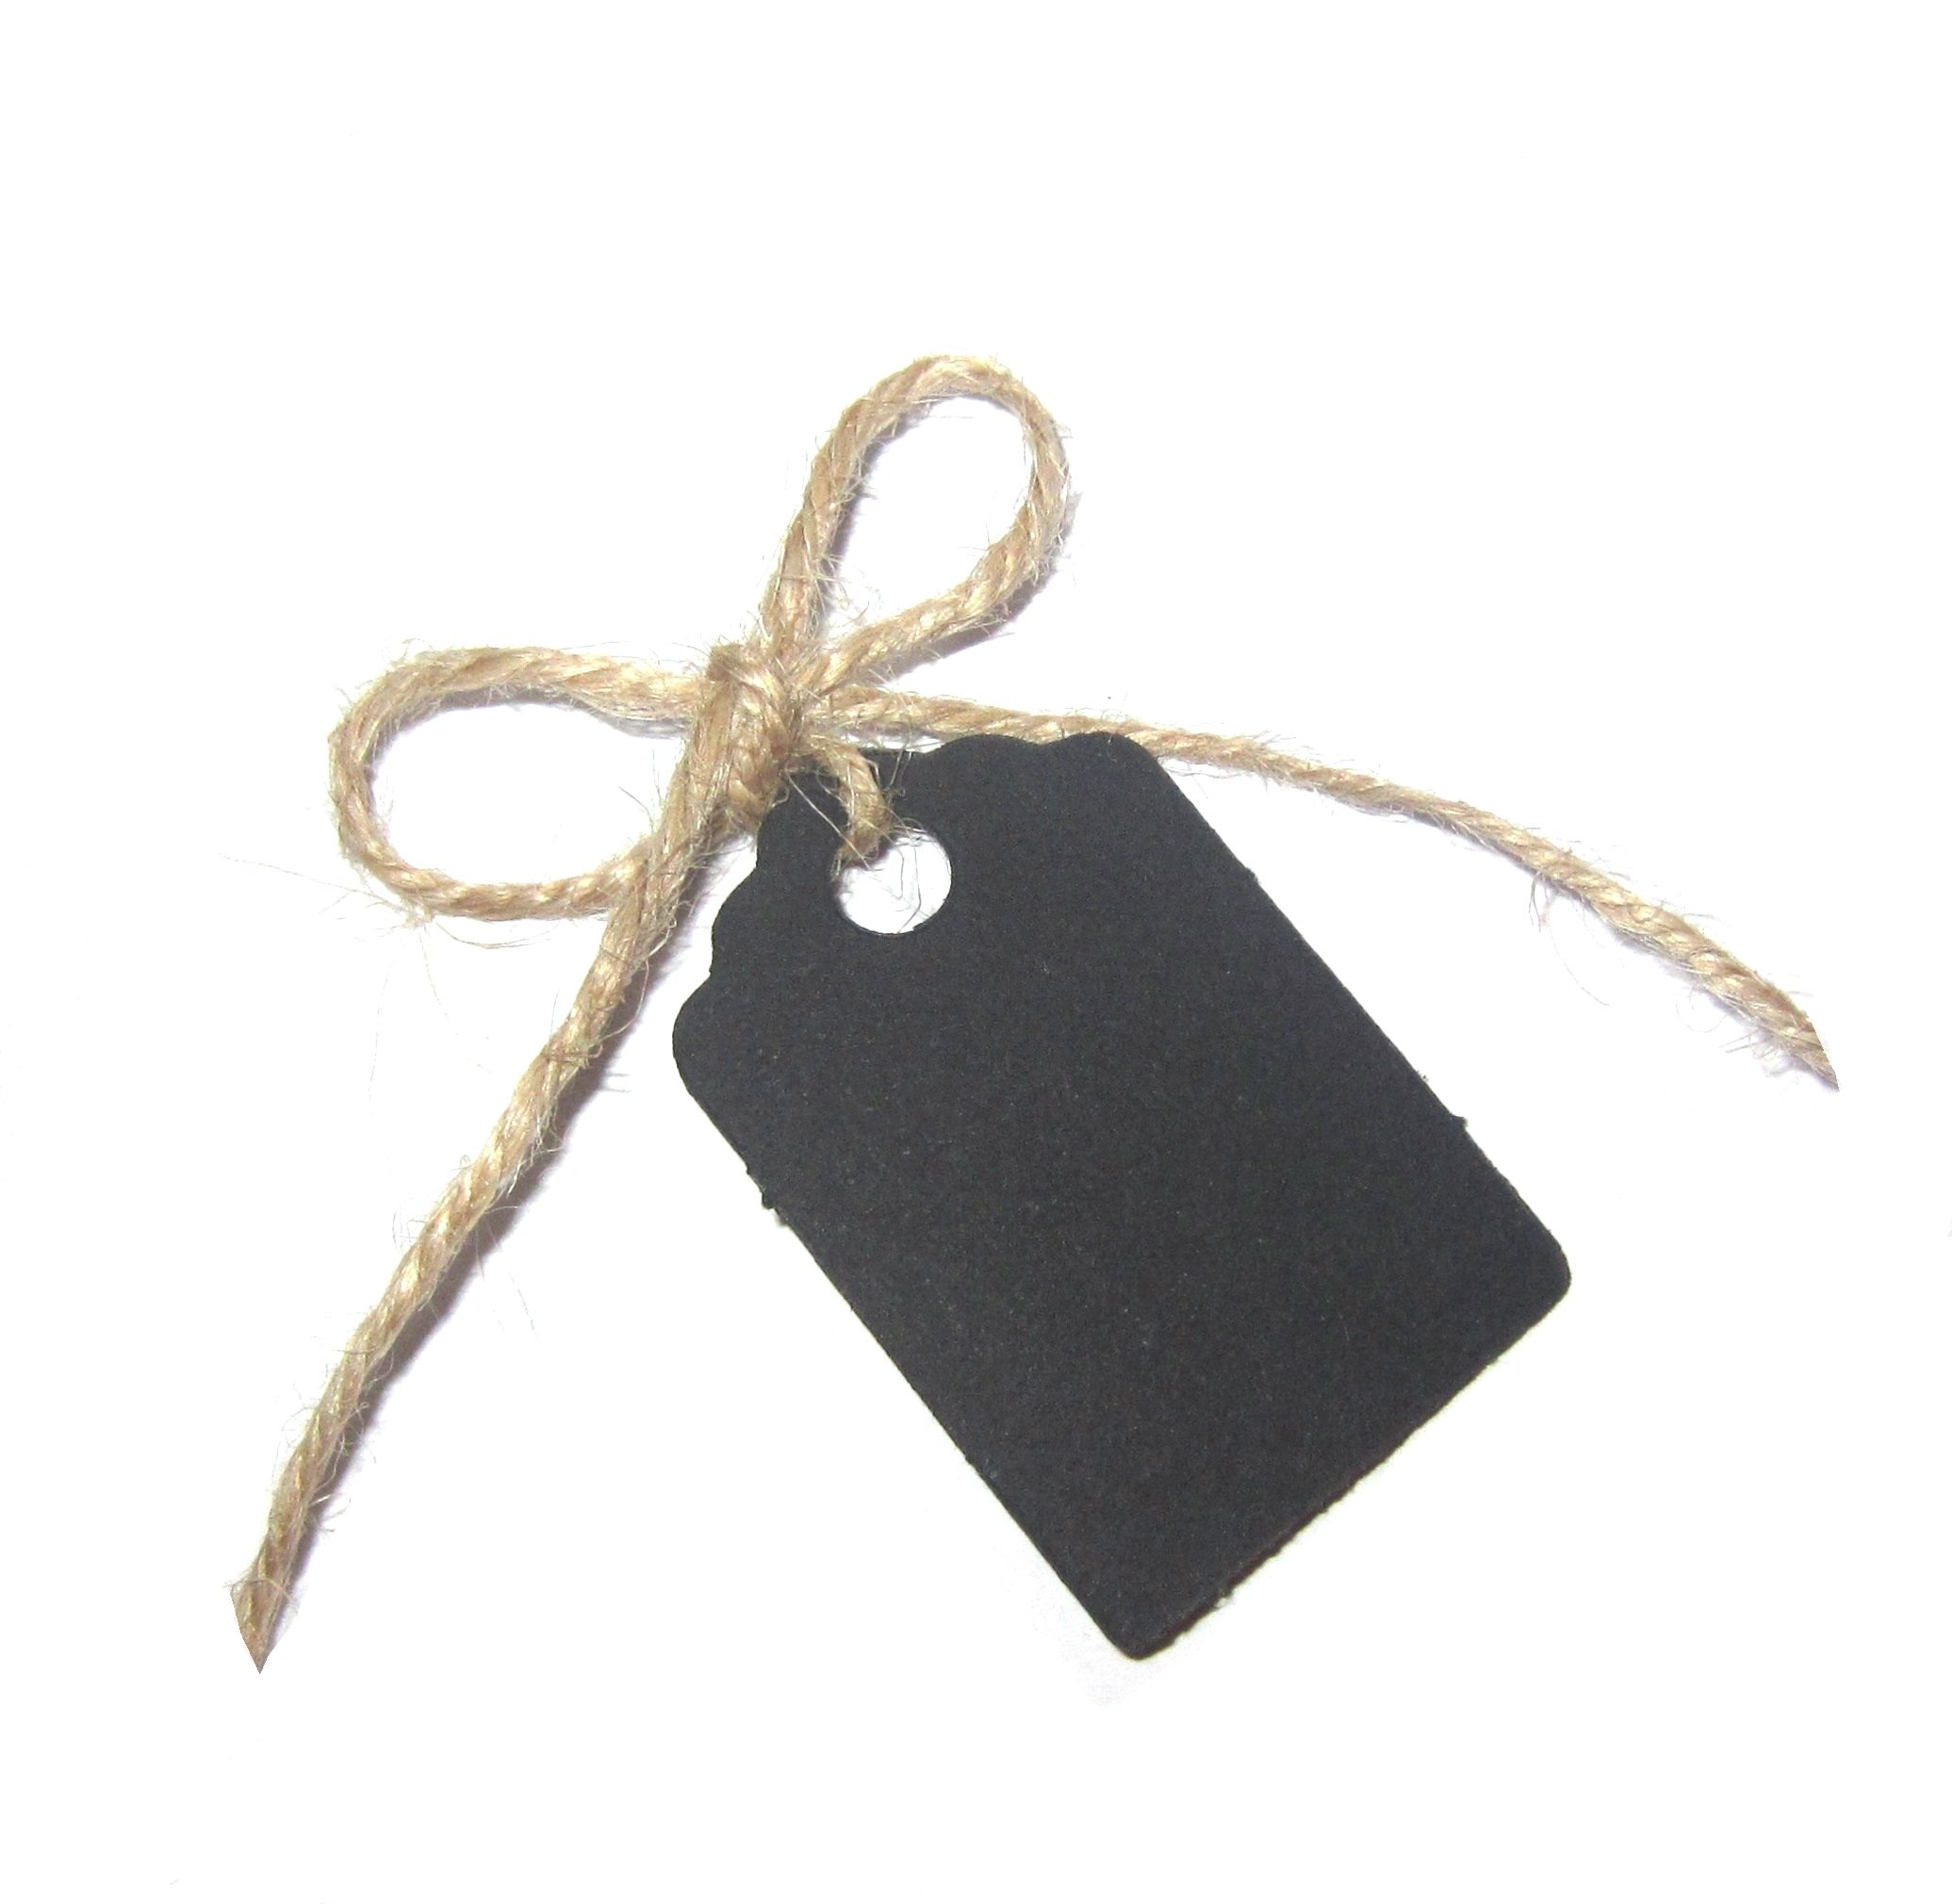 50 Small Gift Tags/Wedding Tags/Favour Tags (with 12 Metres of Uncut Natural Jute Twine) - 42mm x 28mm (100% Recycled Card) (Black)